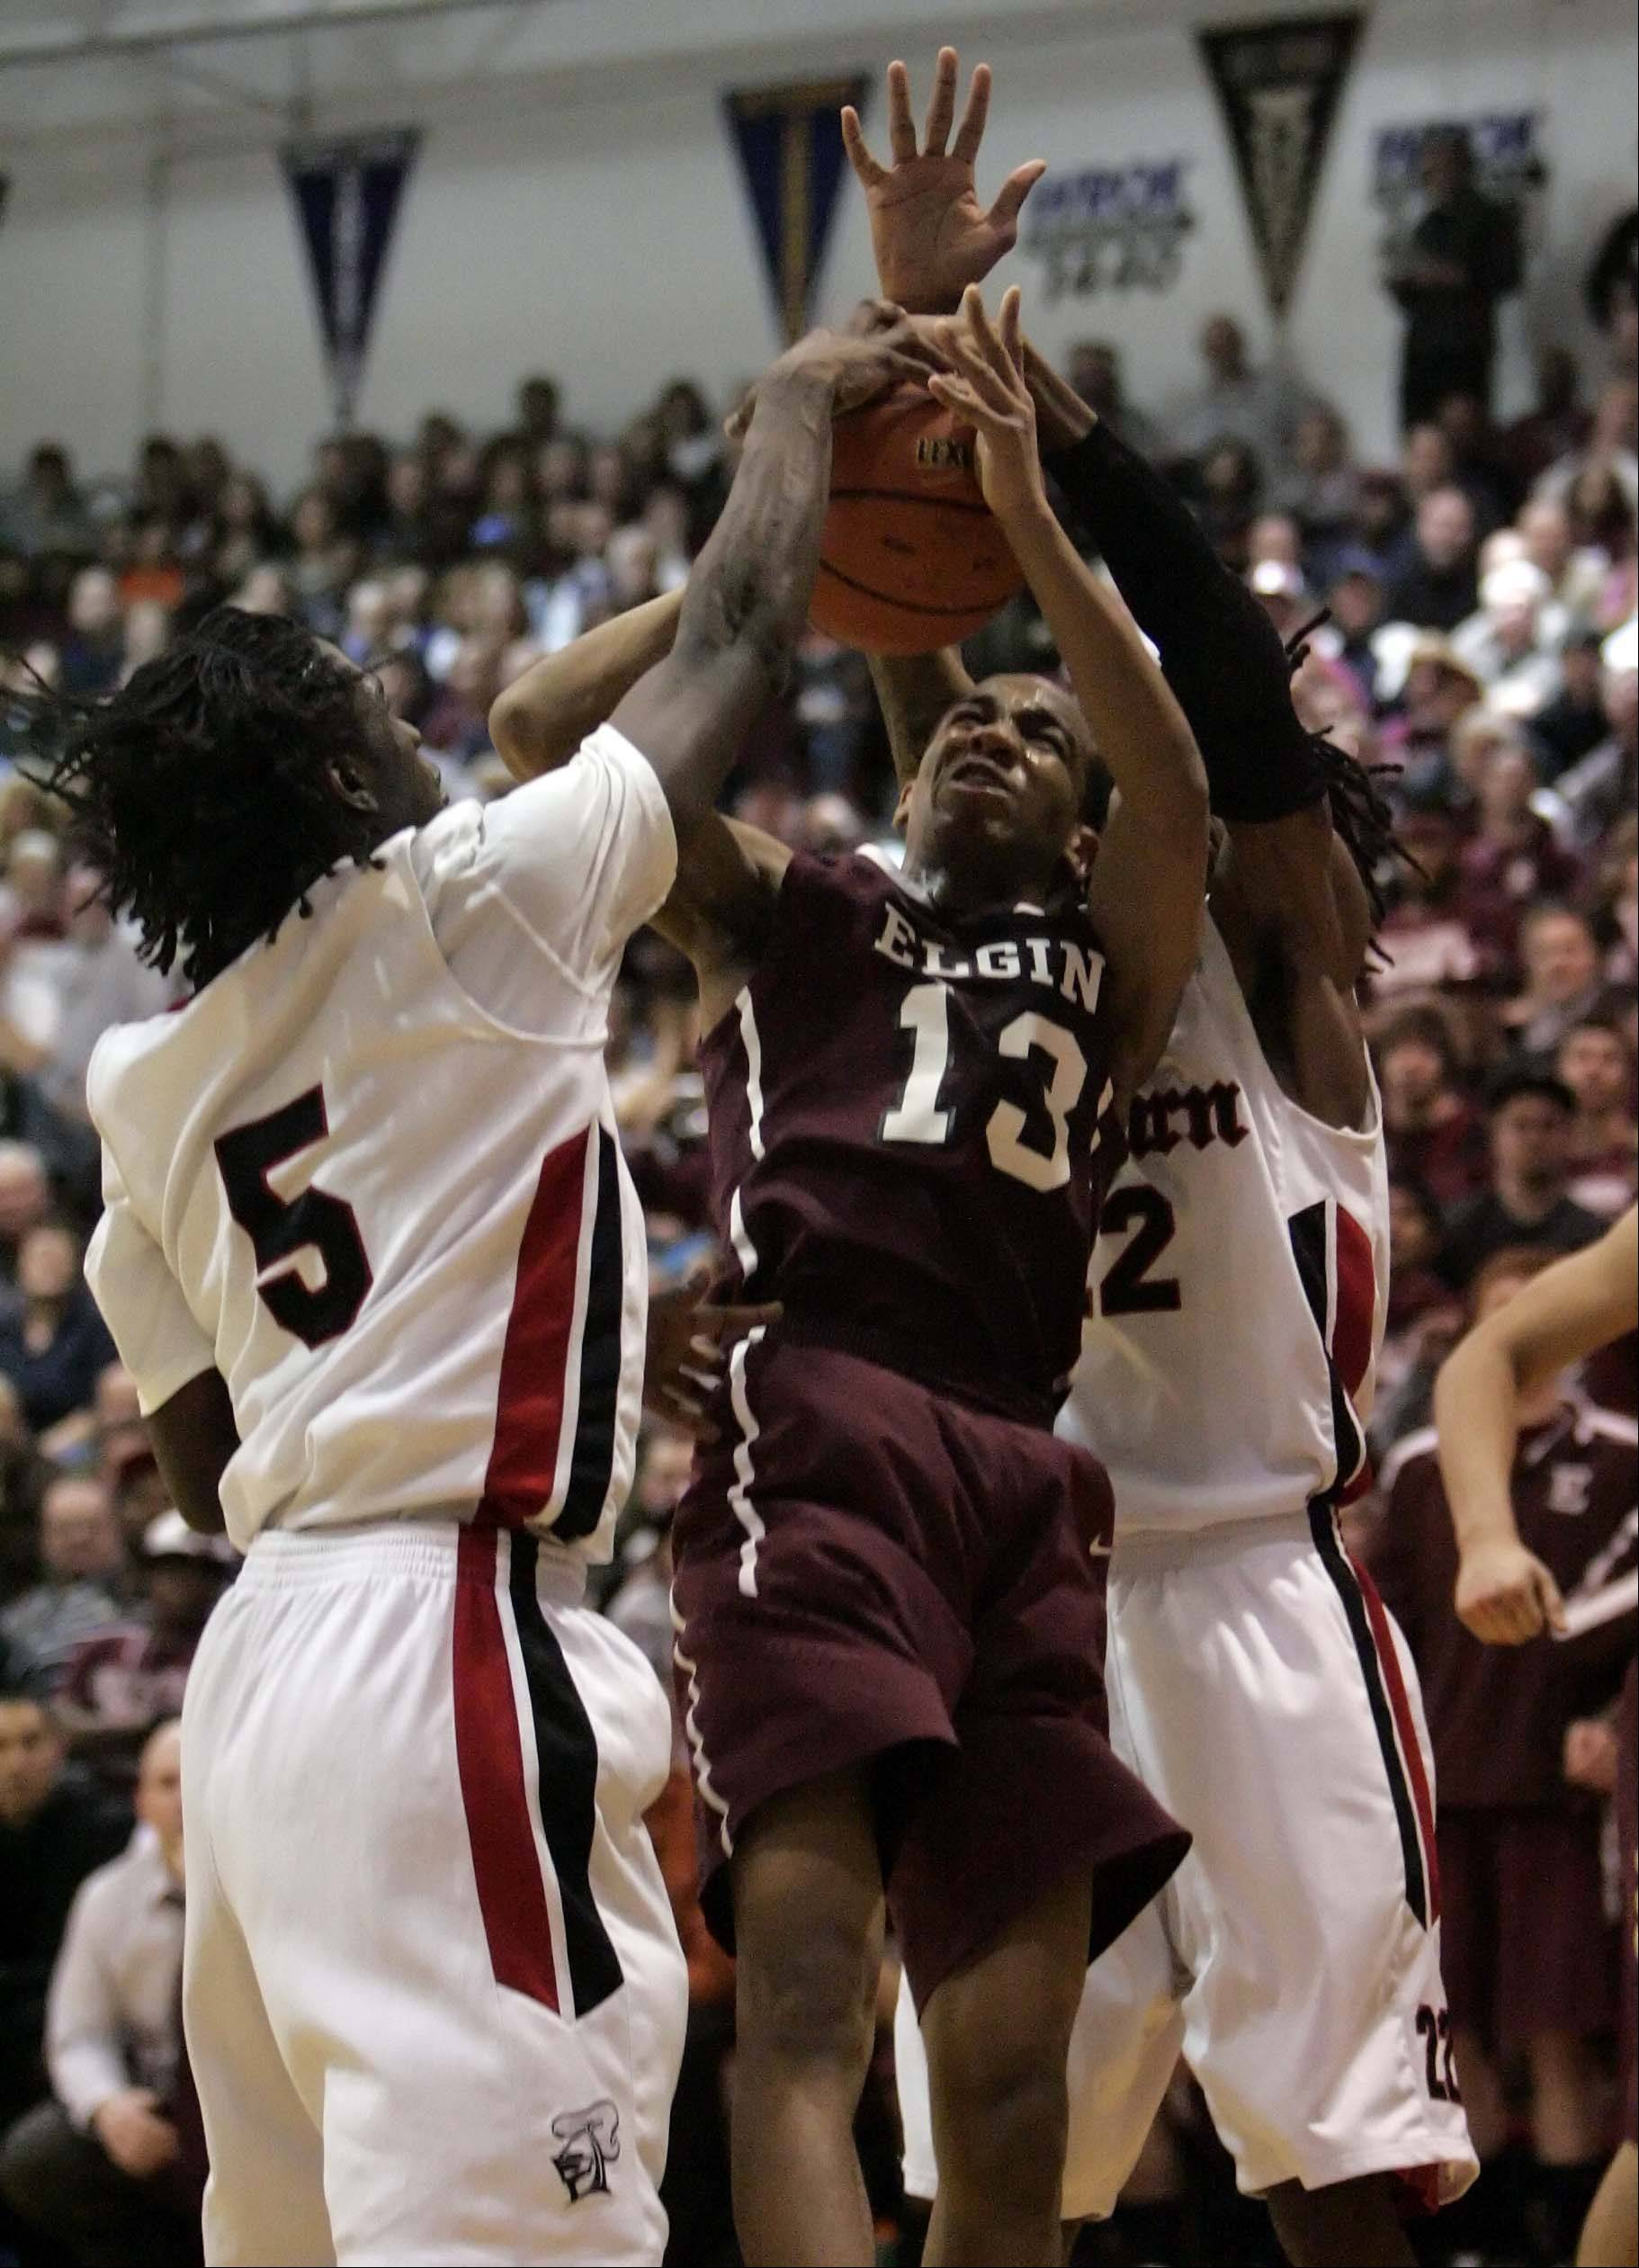 Elgin wing Cortez Scott is fouled on his way to the hoop by Auburn guard Elijah Smith and Auburn guard LaMark Foote .